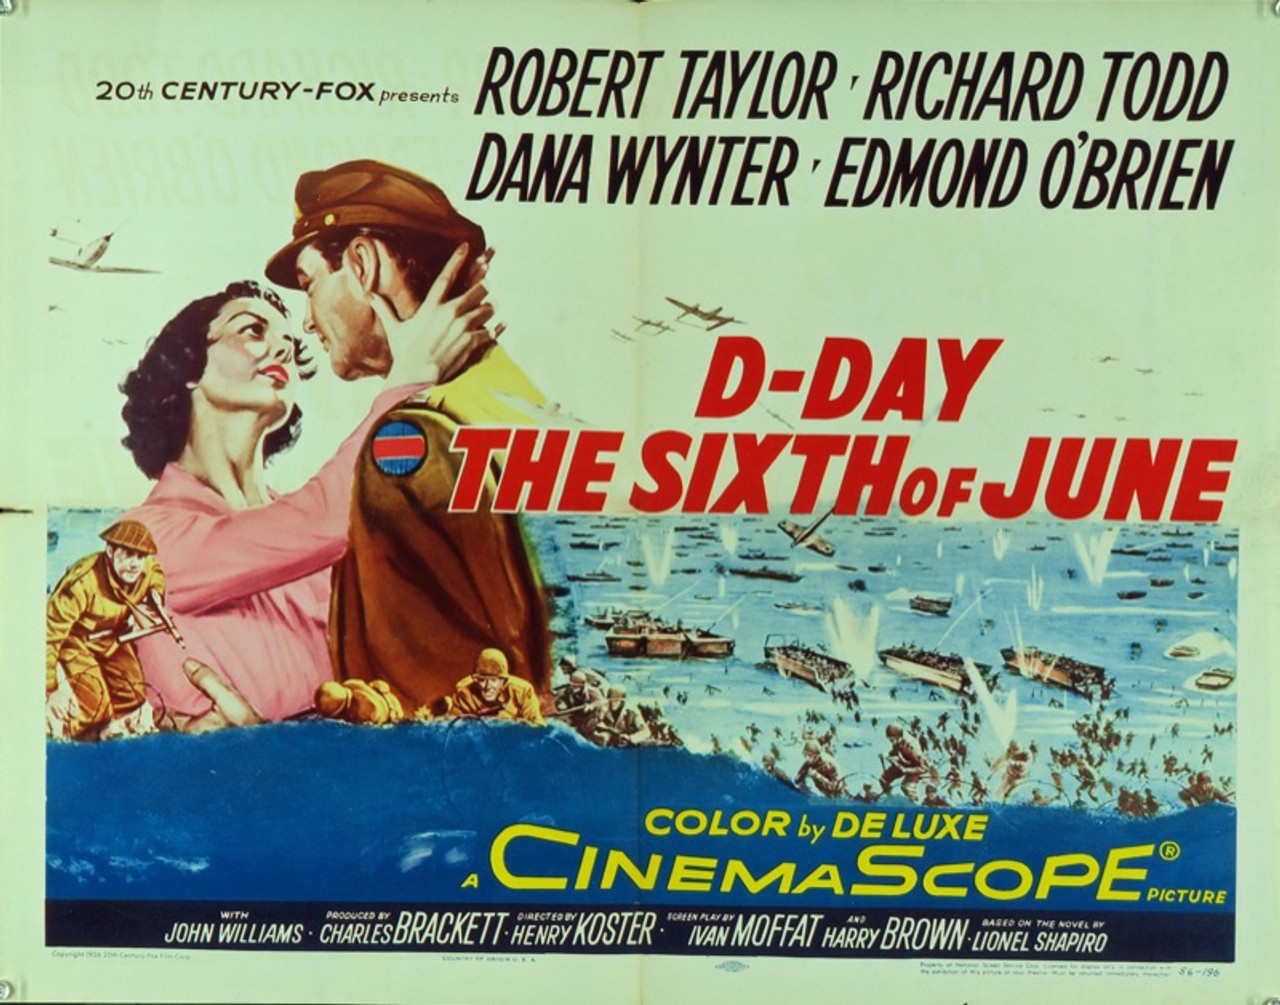 D-DAY THE SIXTH OF JUNE (1956) 8667